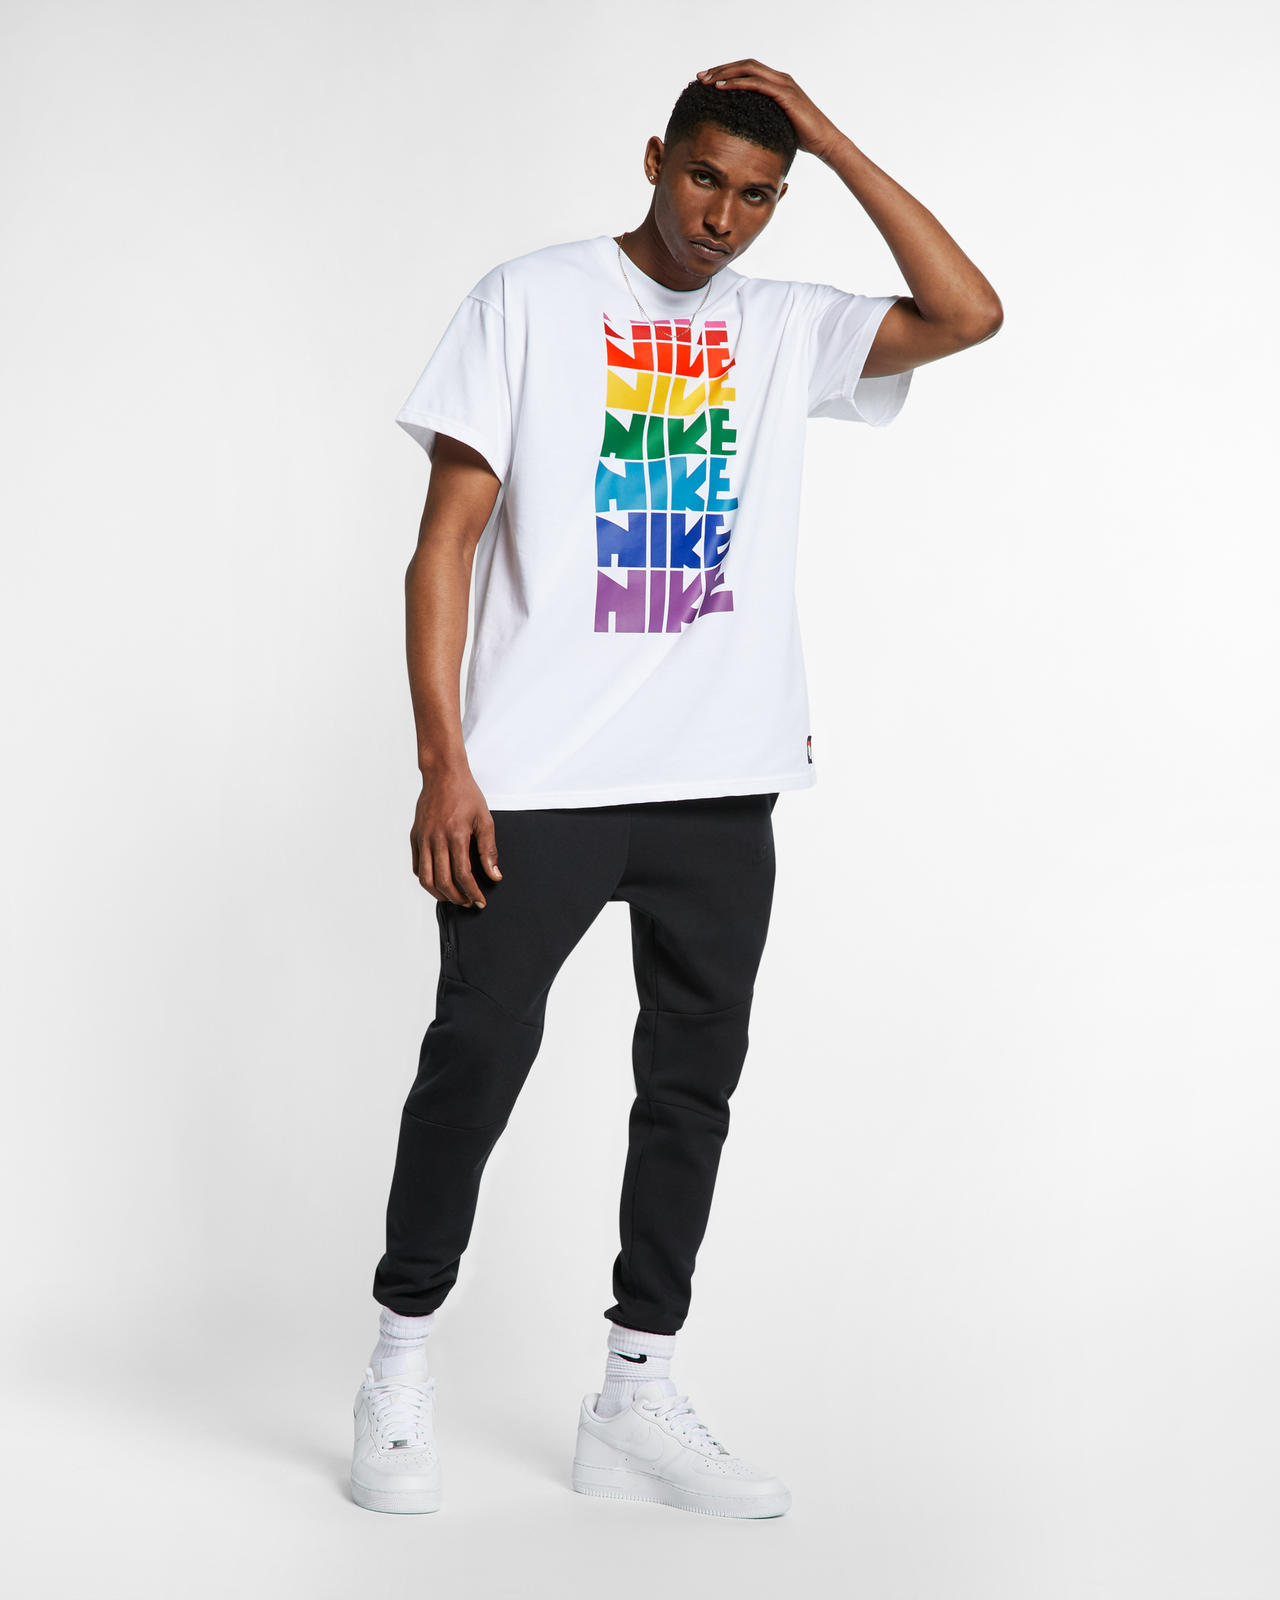 Nike-BETRUE-2019-Collection-7_88101